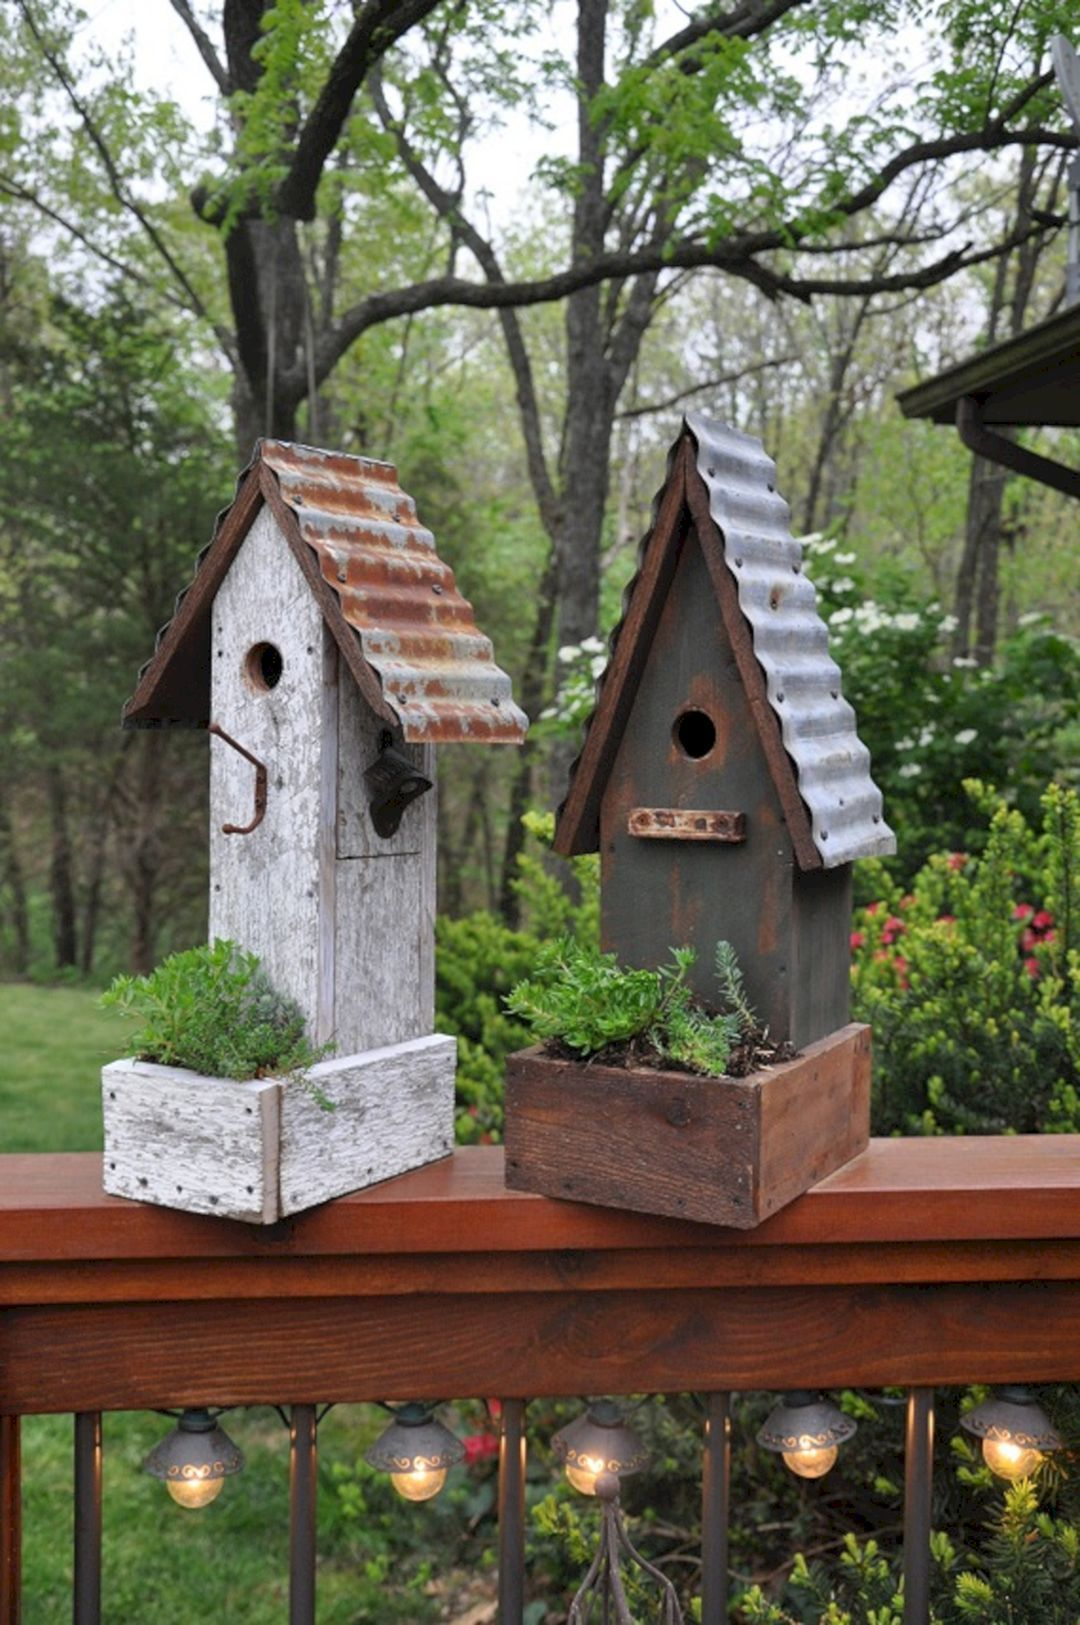 Birdhouse In The Garden (Birdhouse In The Garden) design ideas and photos #birdhouses